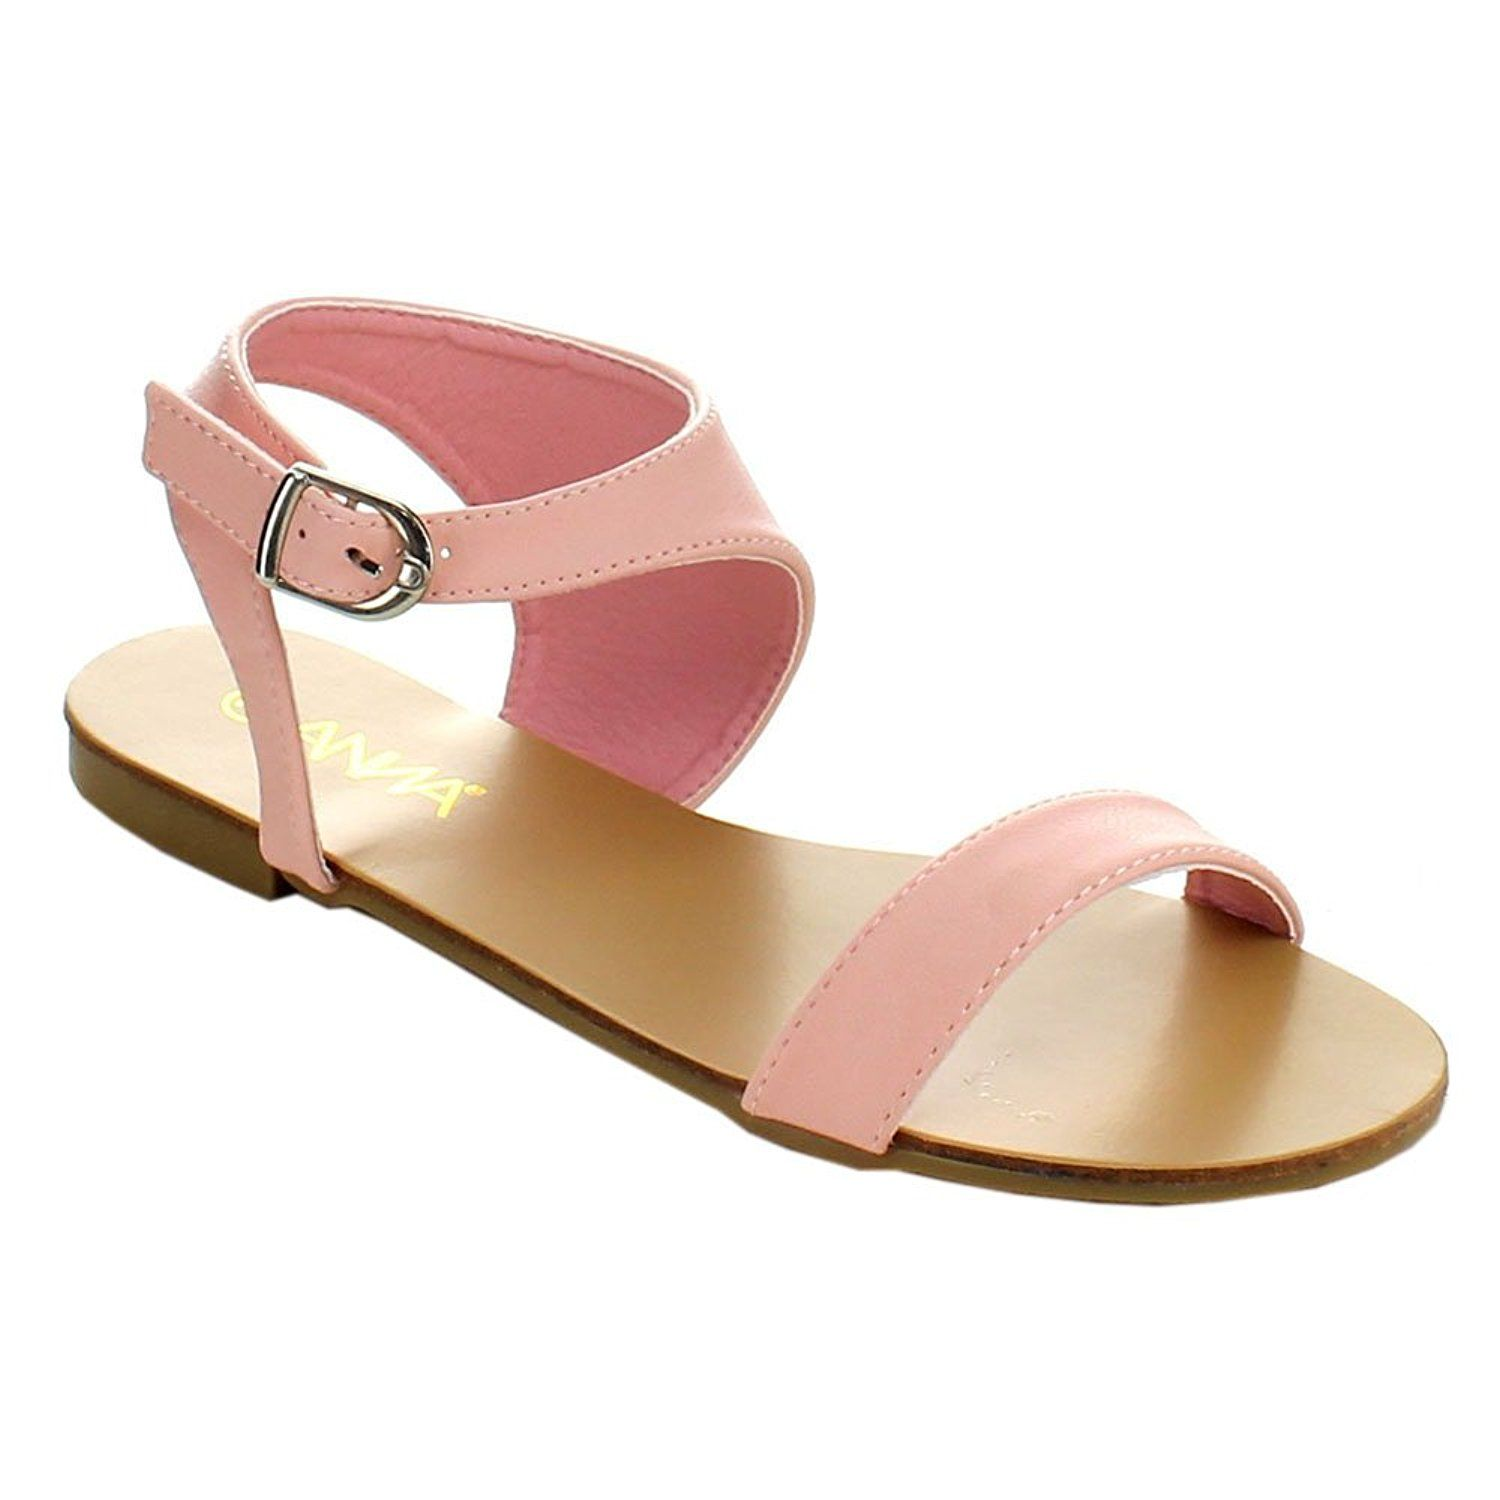 Flat heel sandals images - Anna Covina 1 Womens Stylish Round Toe Ankle Strap Flat Heel Sandals Pink